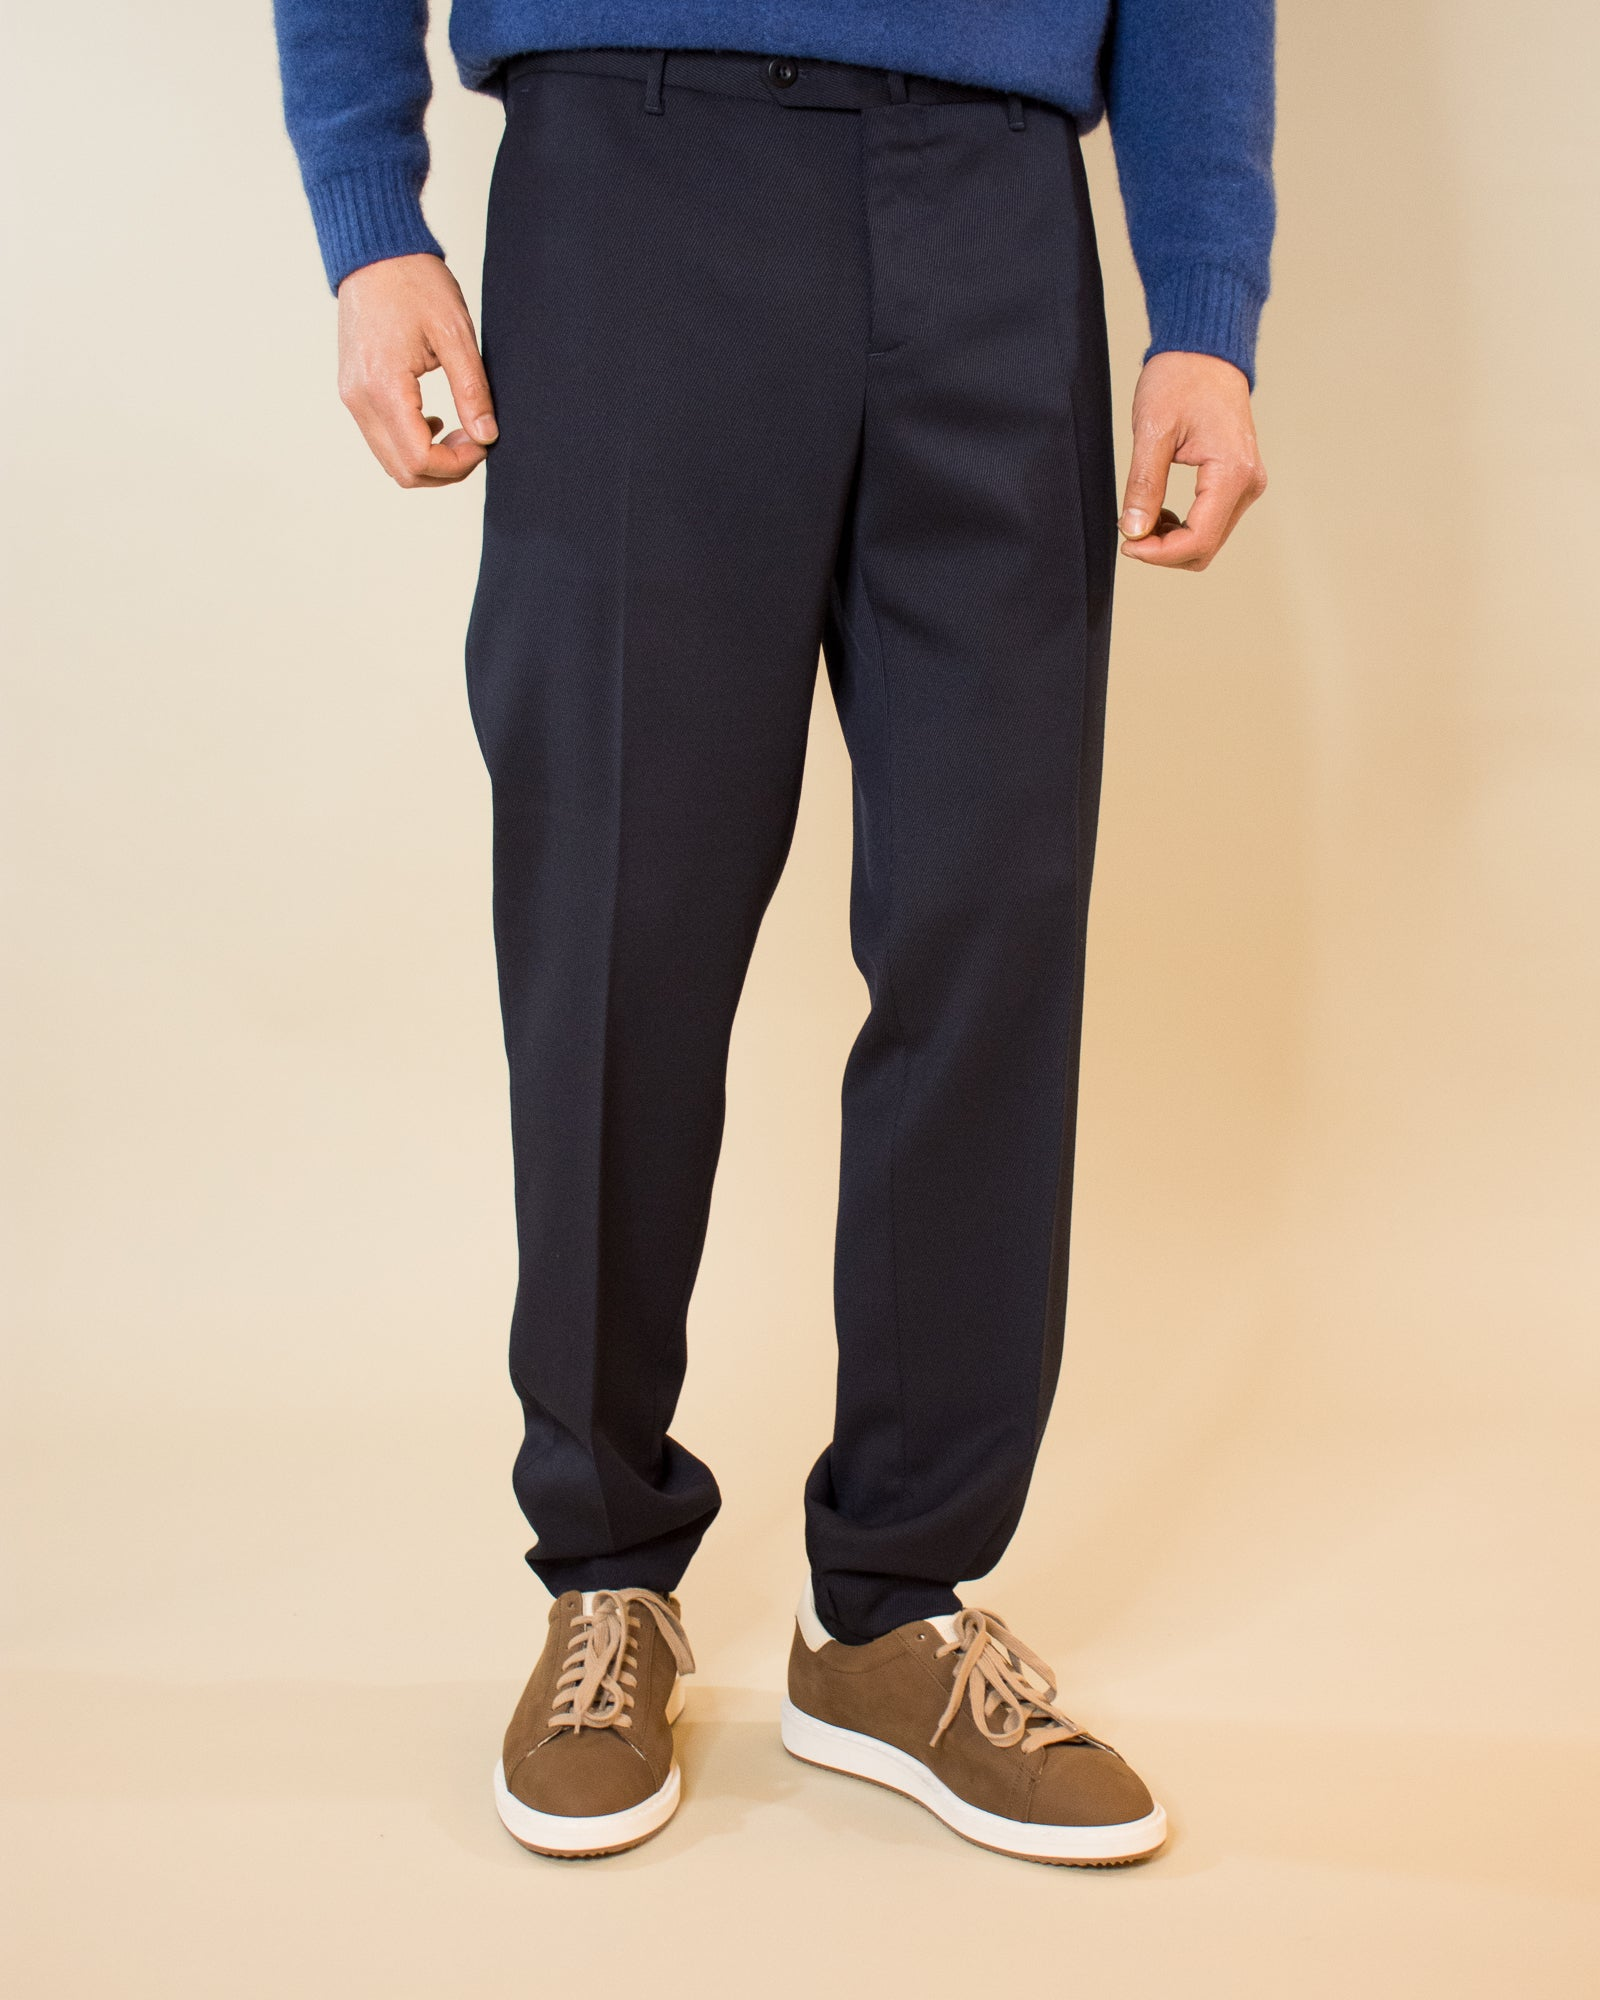 SLOWEAR Urban Traveller Trouser